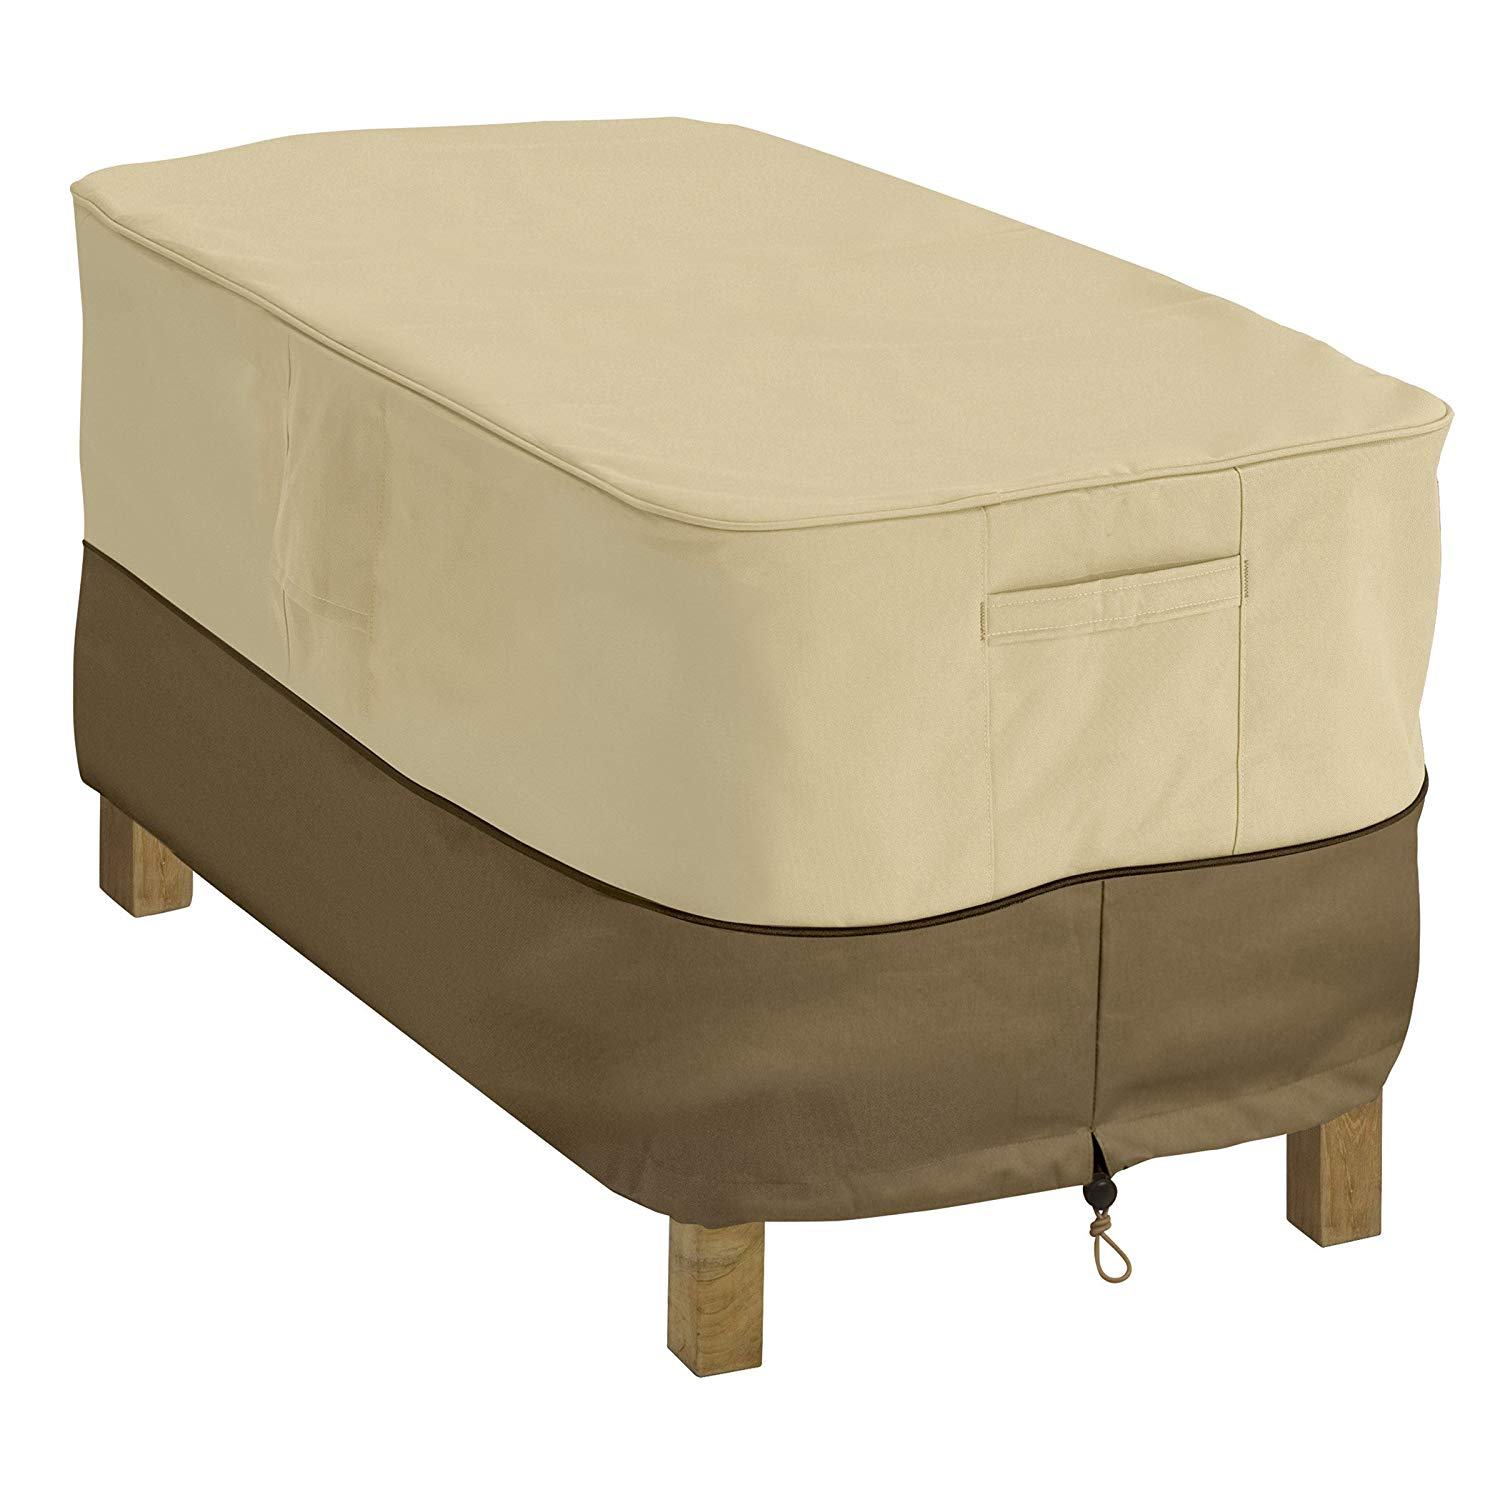 patio furniture covers amazon.com : classic accessories veranda patio coffee table cover - durable QKPPLXL